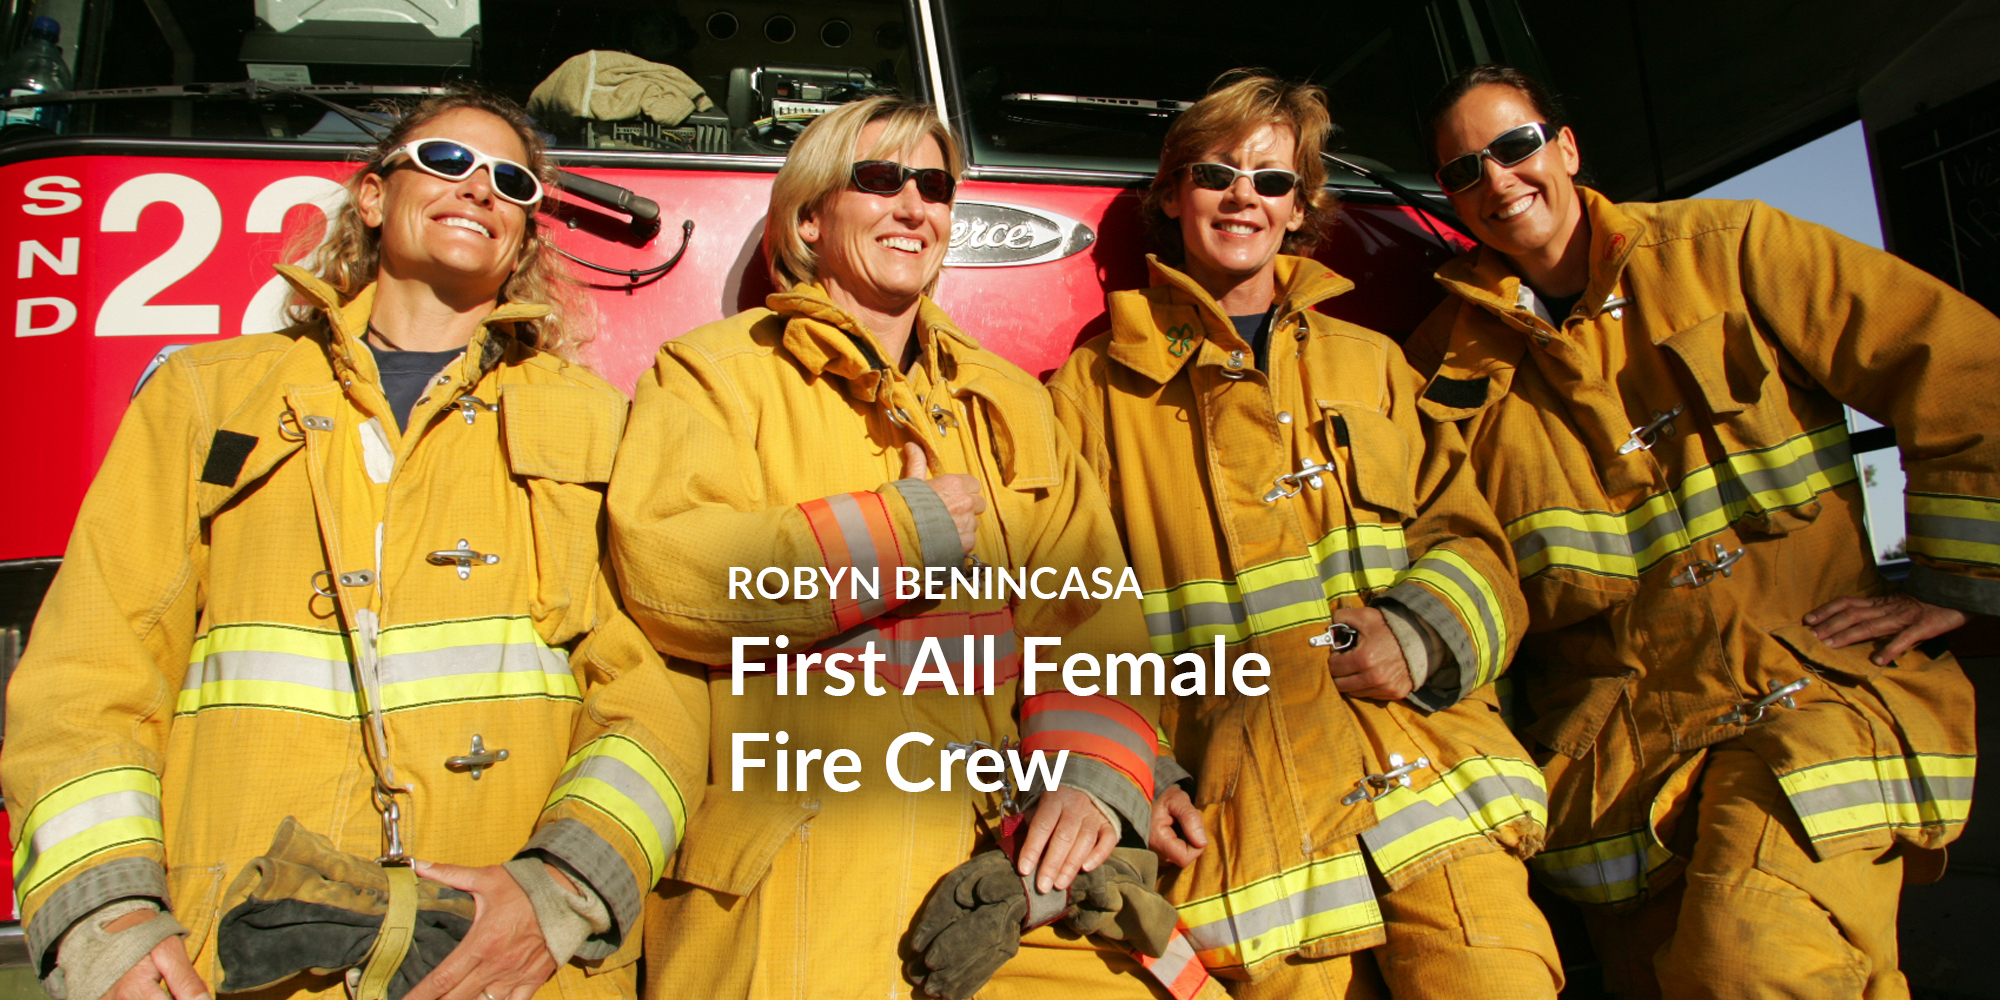 Robyn Benincasa: America's First All Female Fire Crew